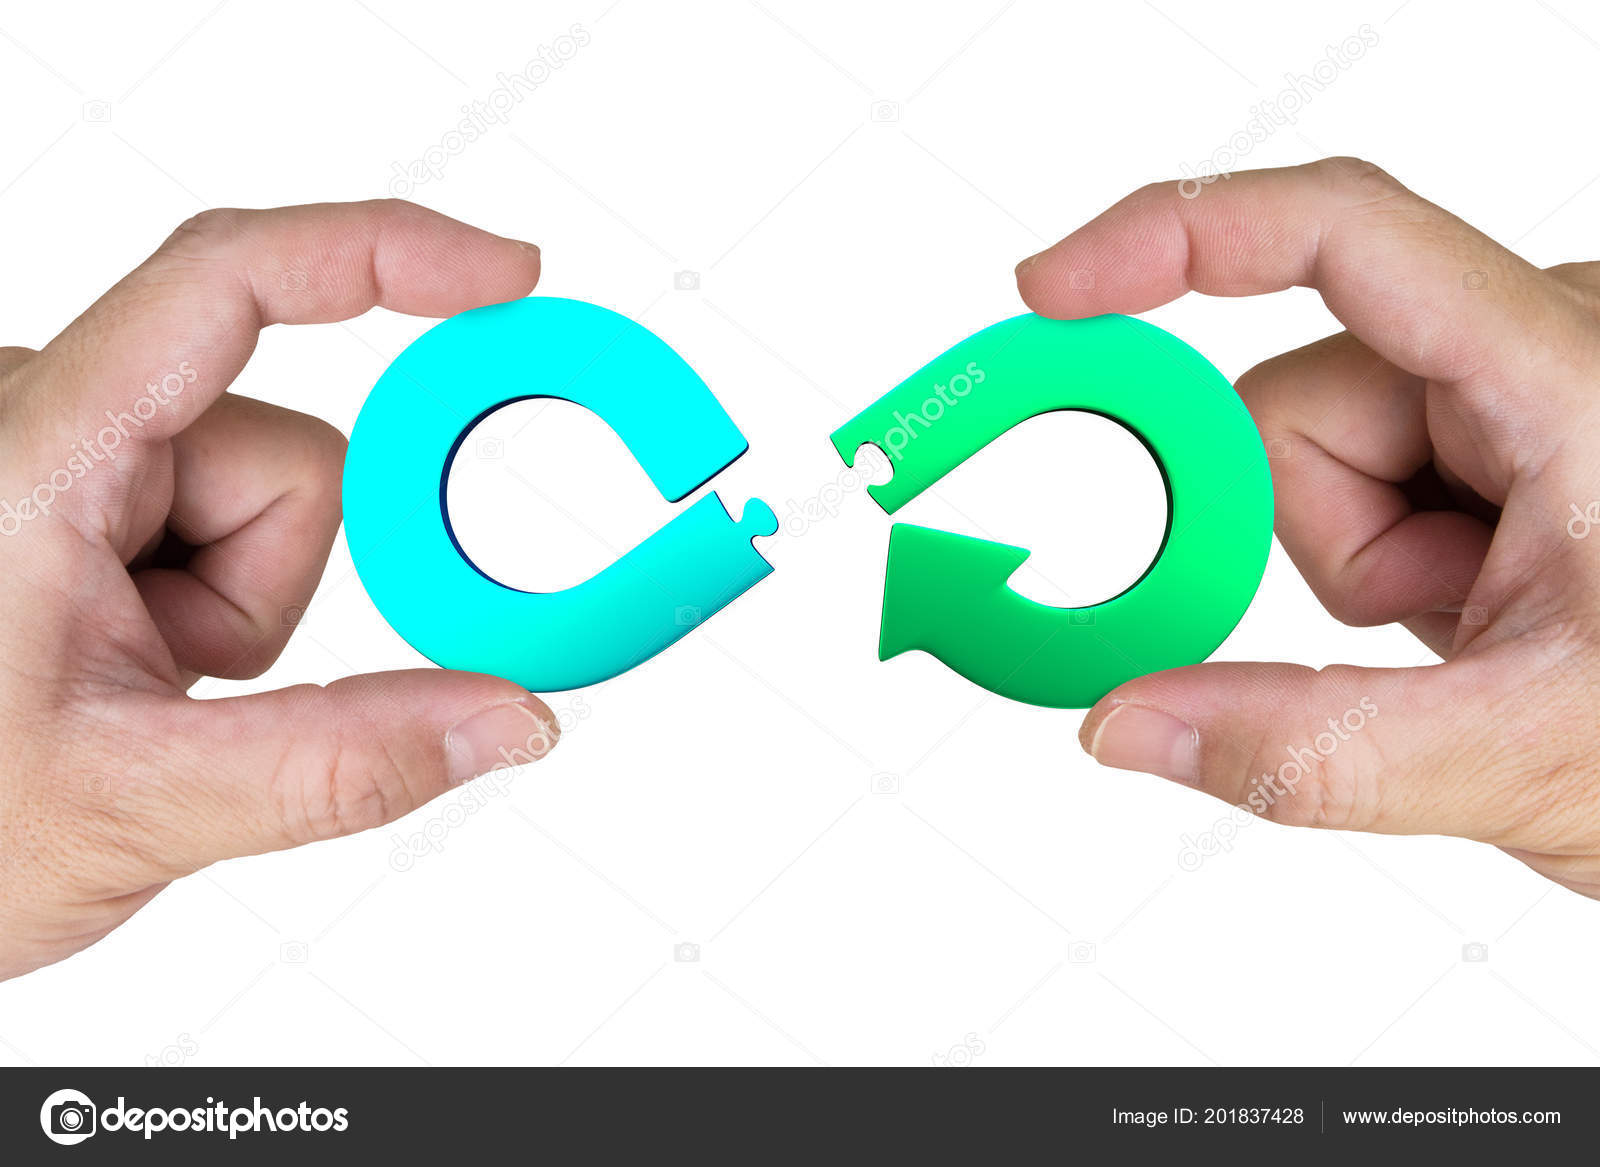 Circular Economy Concept Two Hands Assembling Arrow Infinity